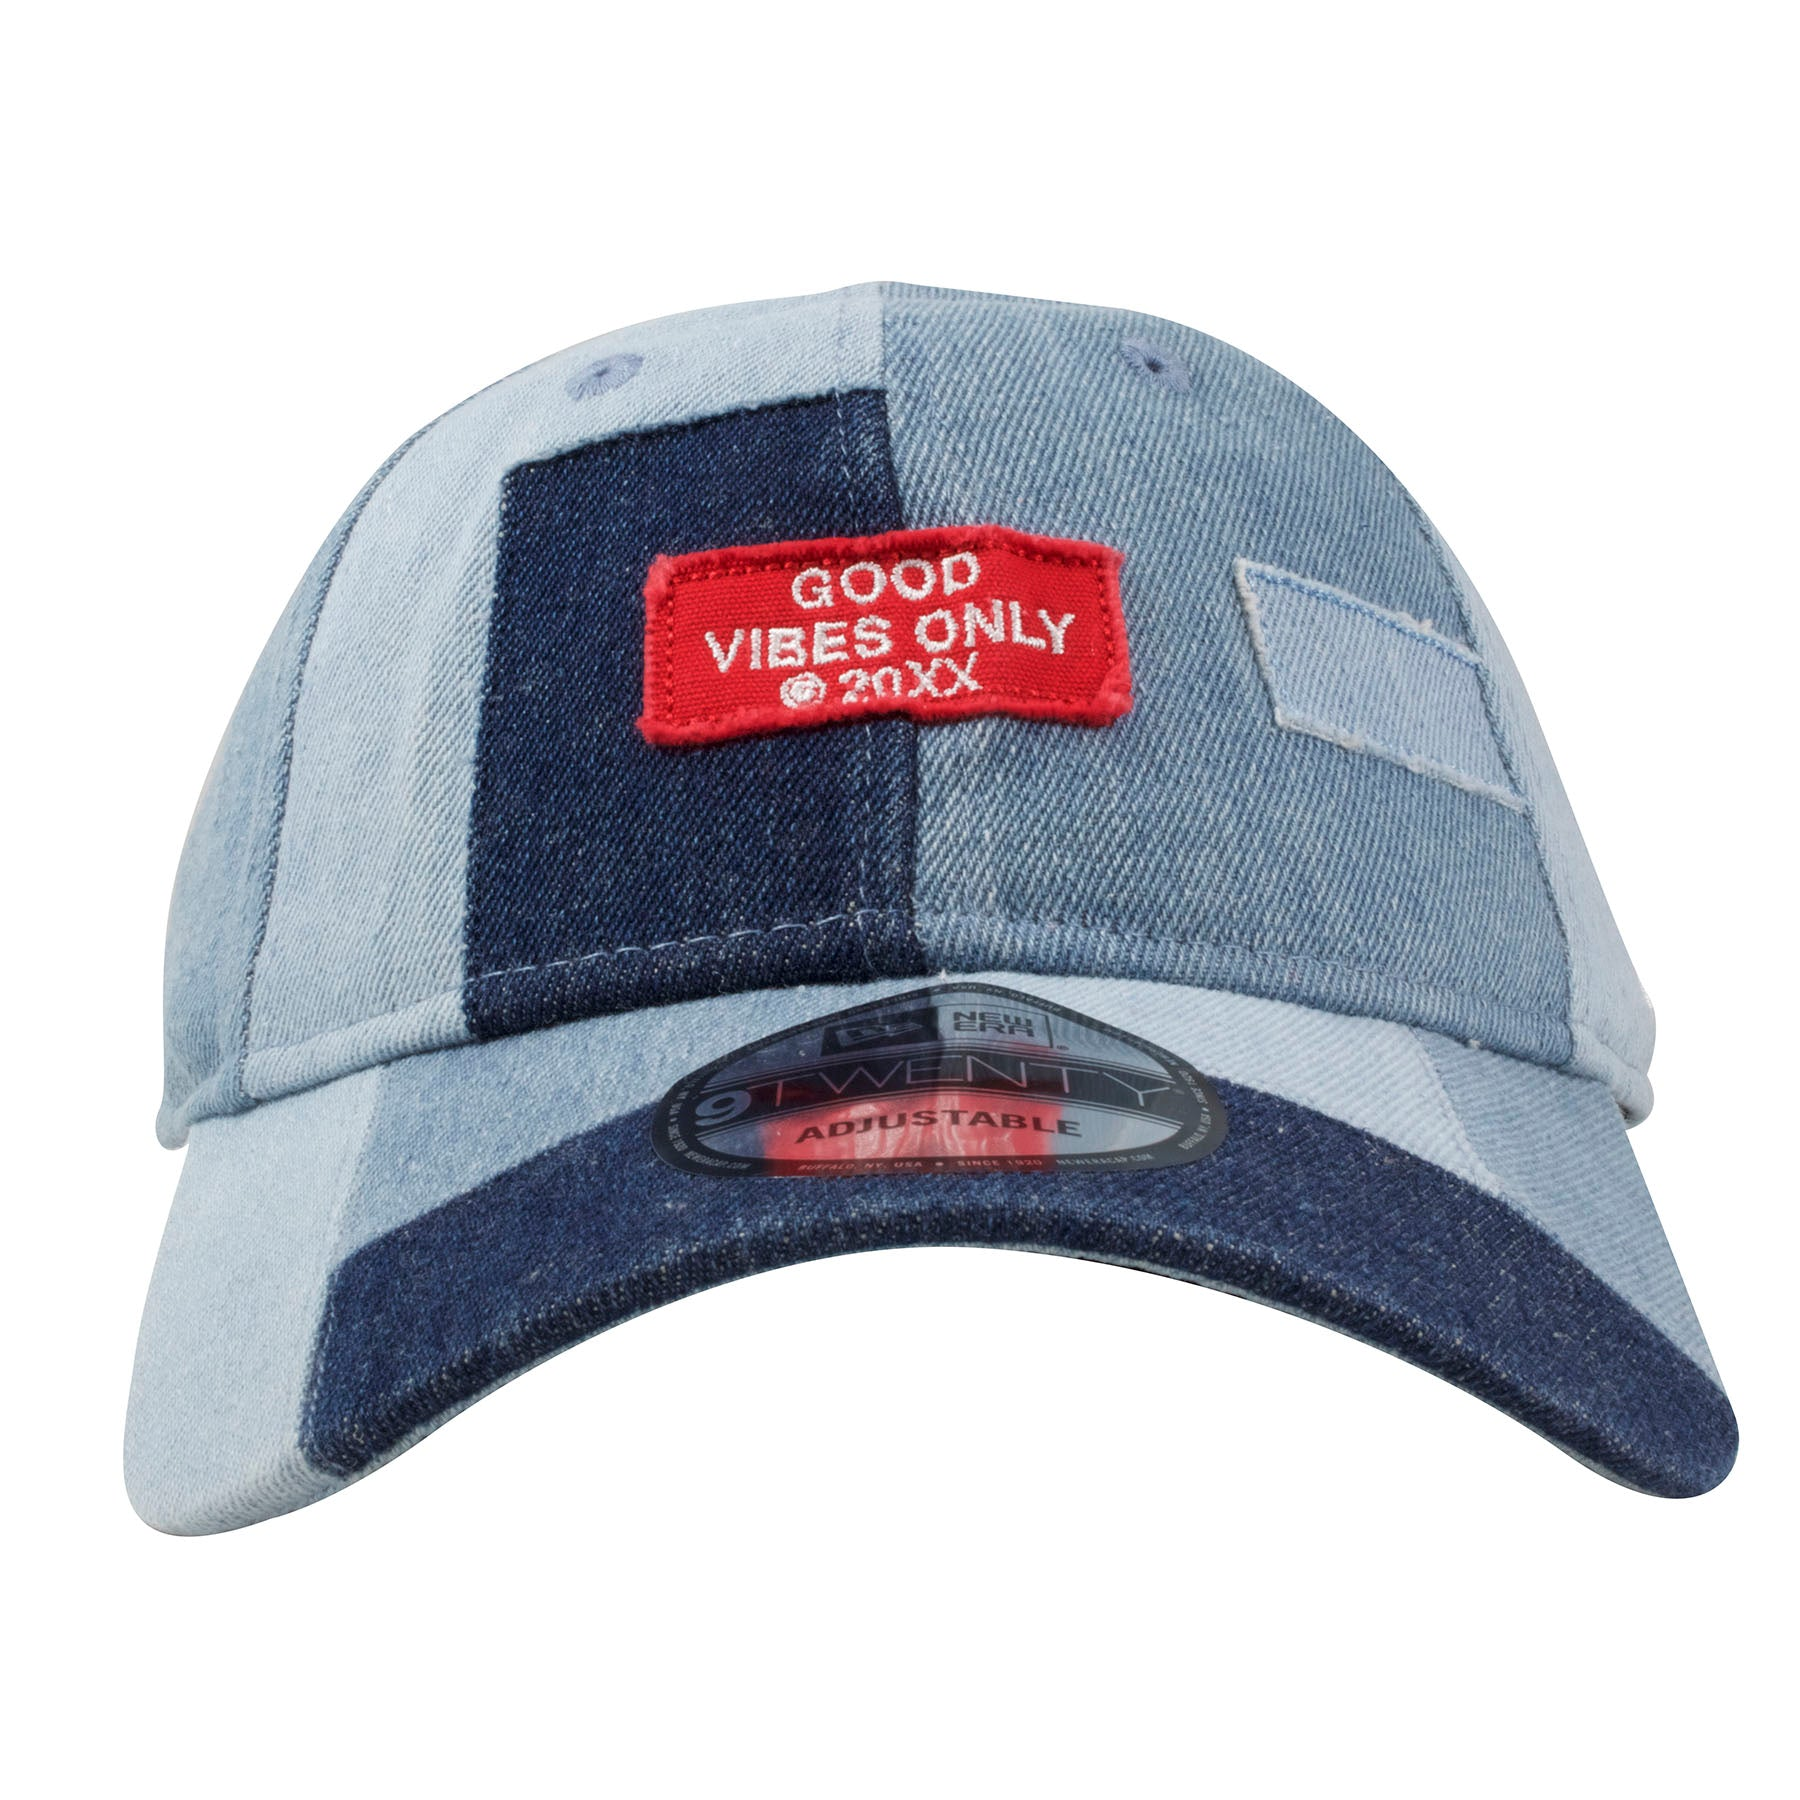 5c71c3790c8 On the front of the denim grunge patch dad hat is a red Good Vibes Only